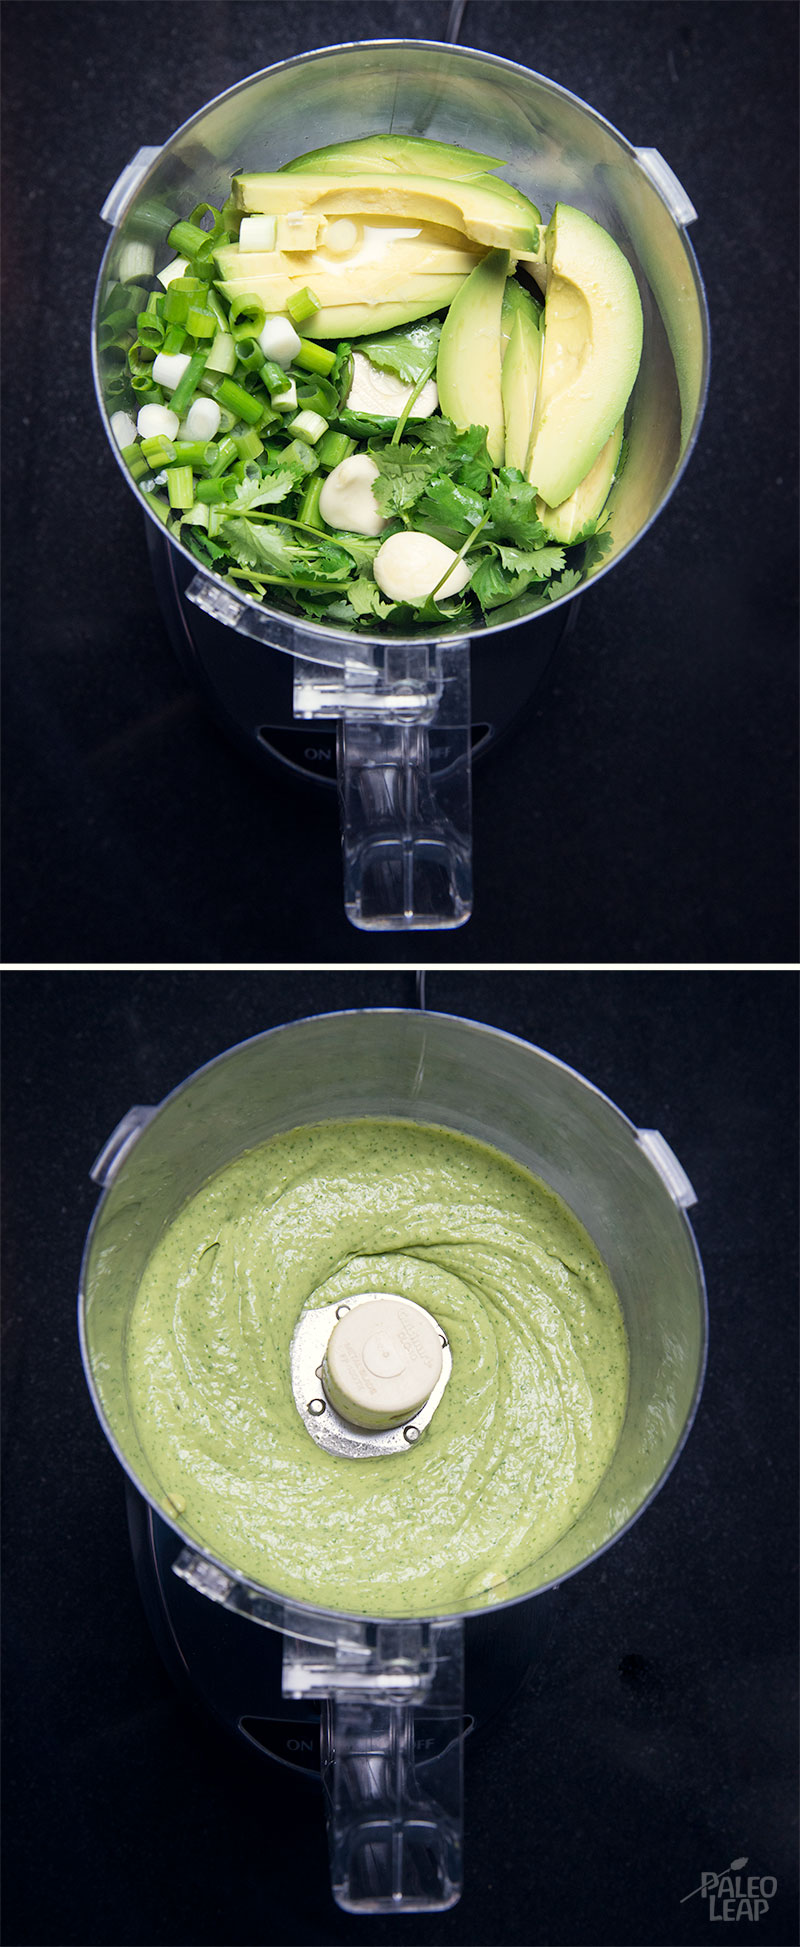 Avocado dipping sauce preparation